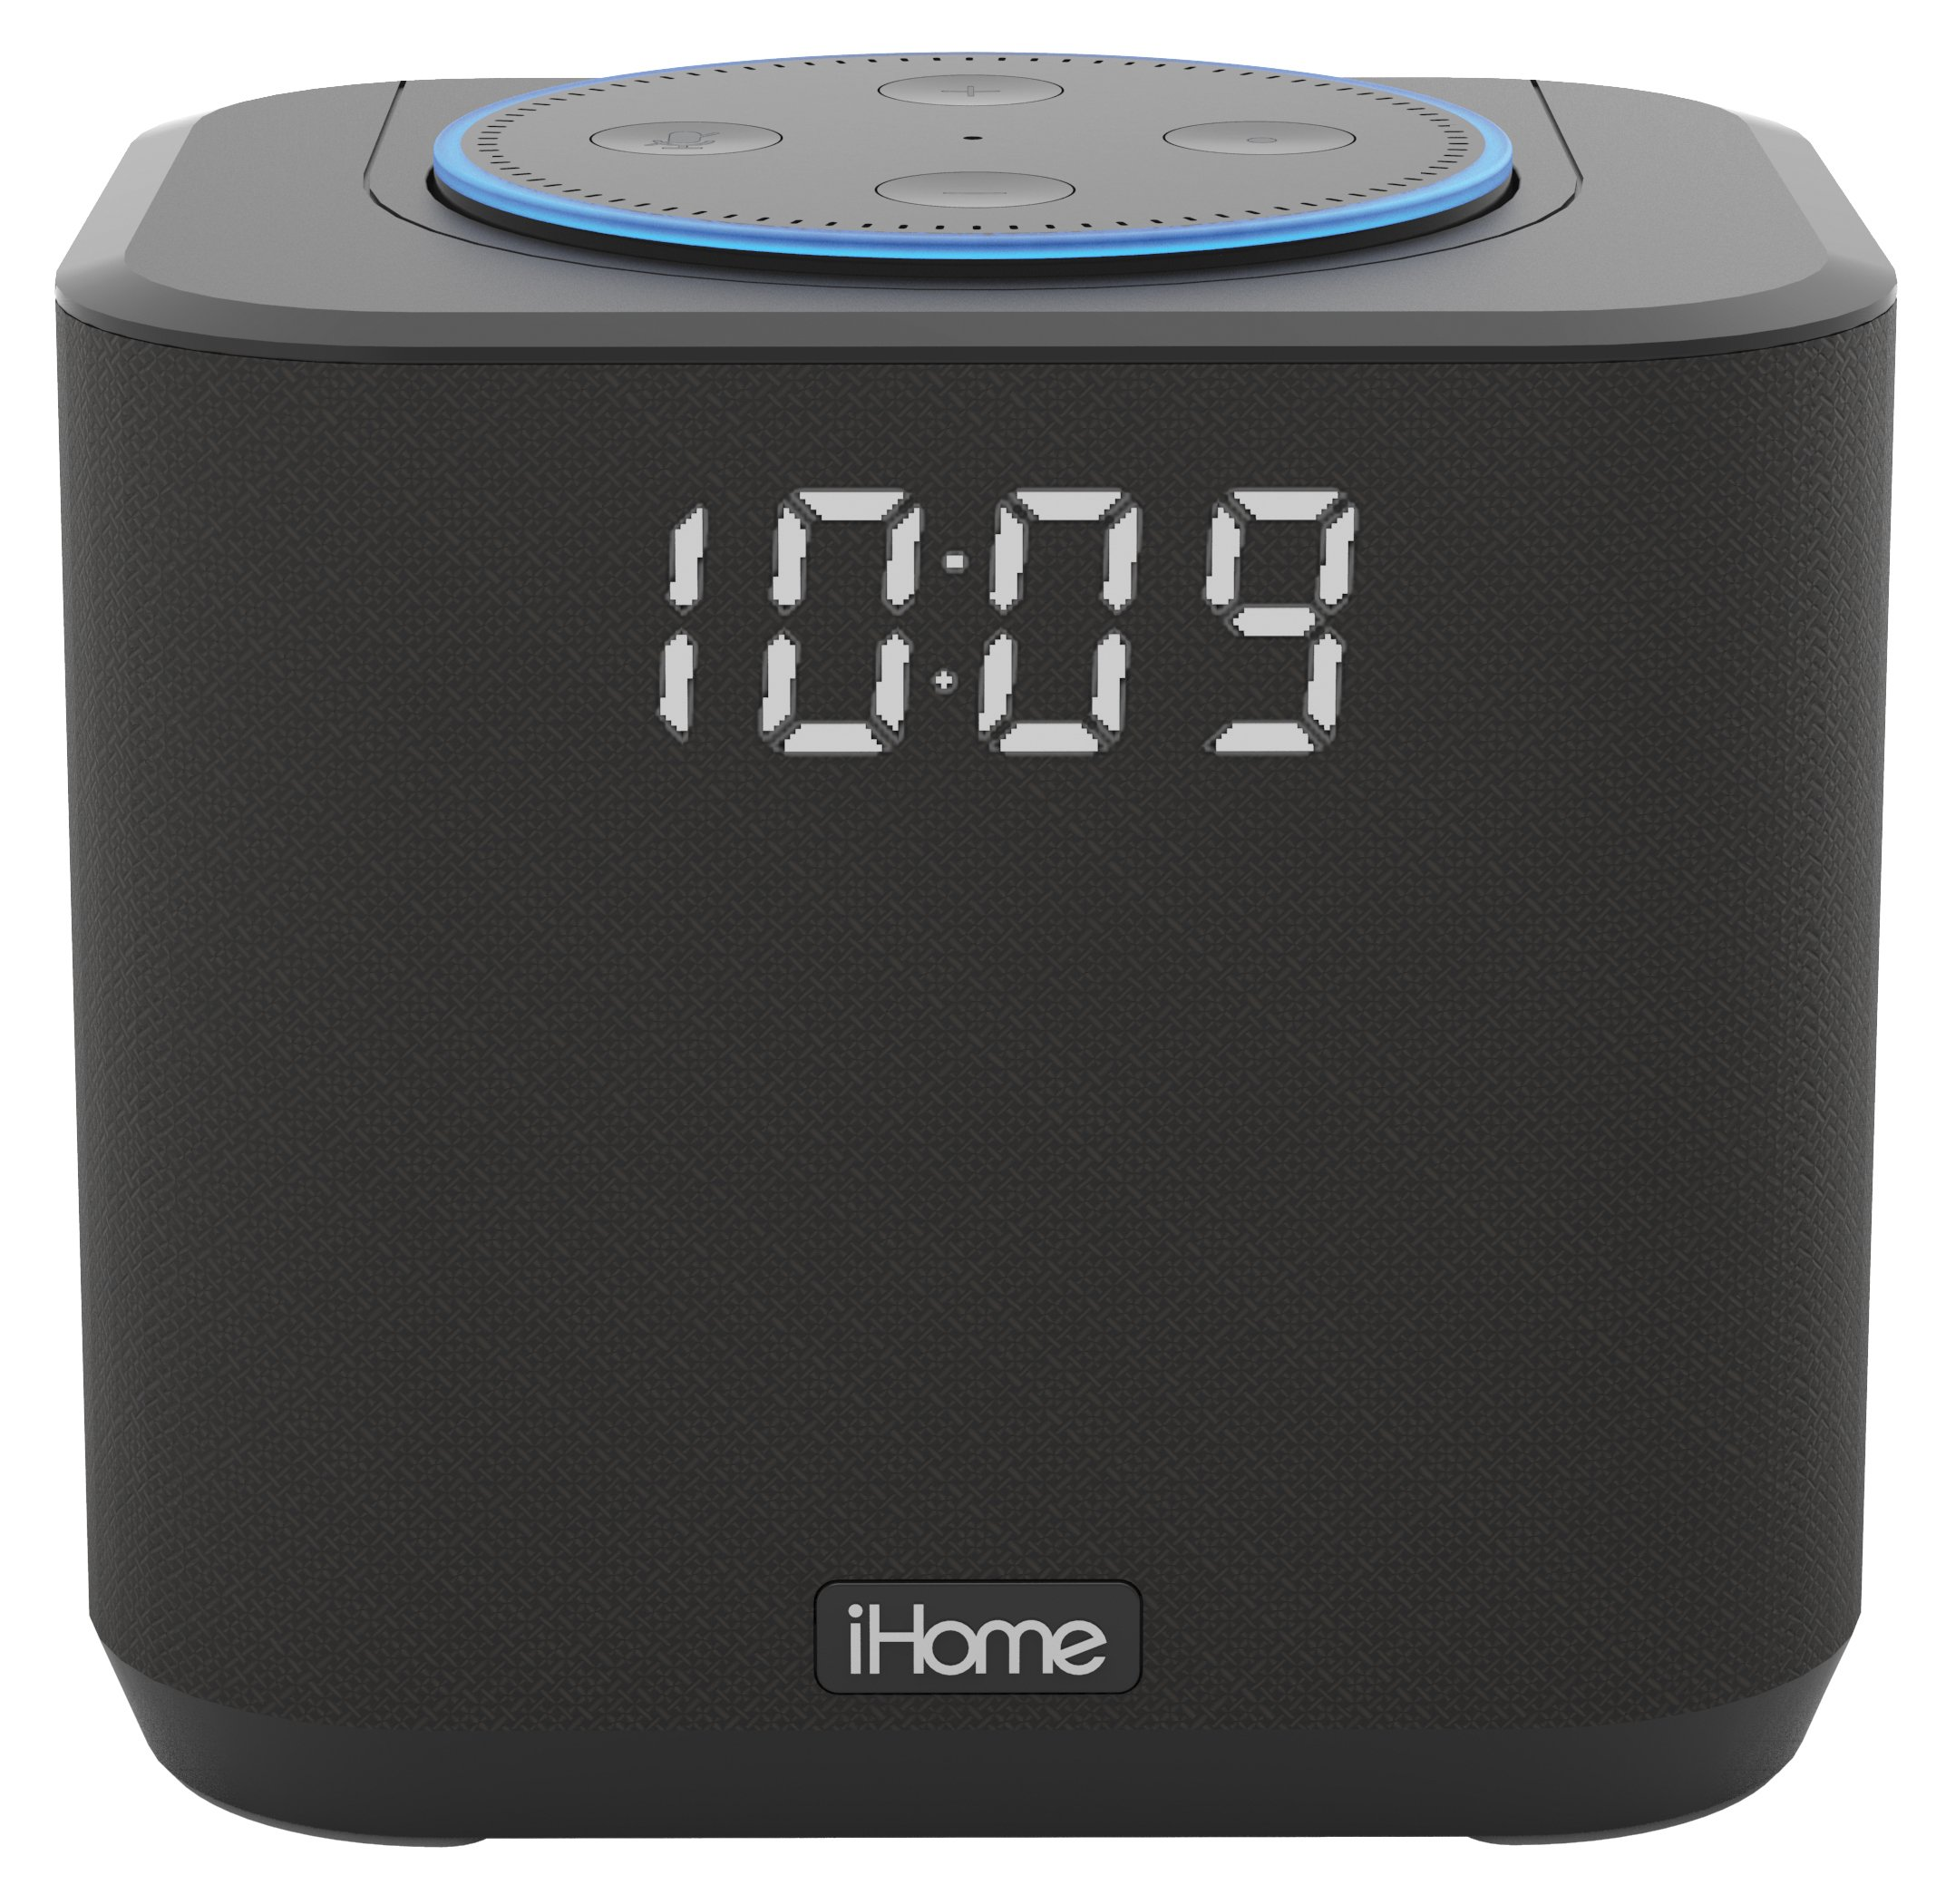 iHome Docking Bedside and Home Office Amazon Echo Dot Speaker System - iAV2B by iHome